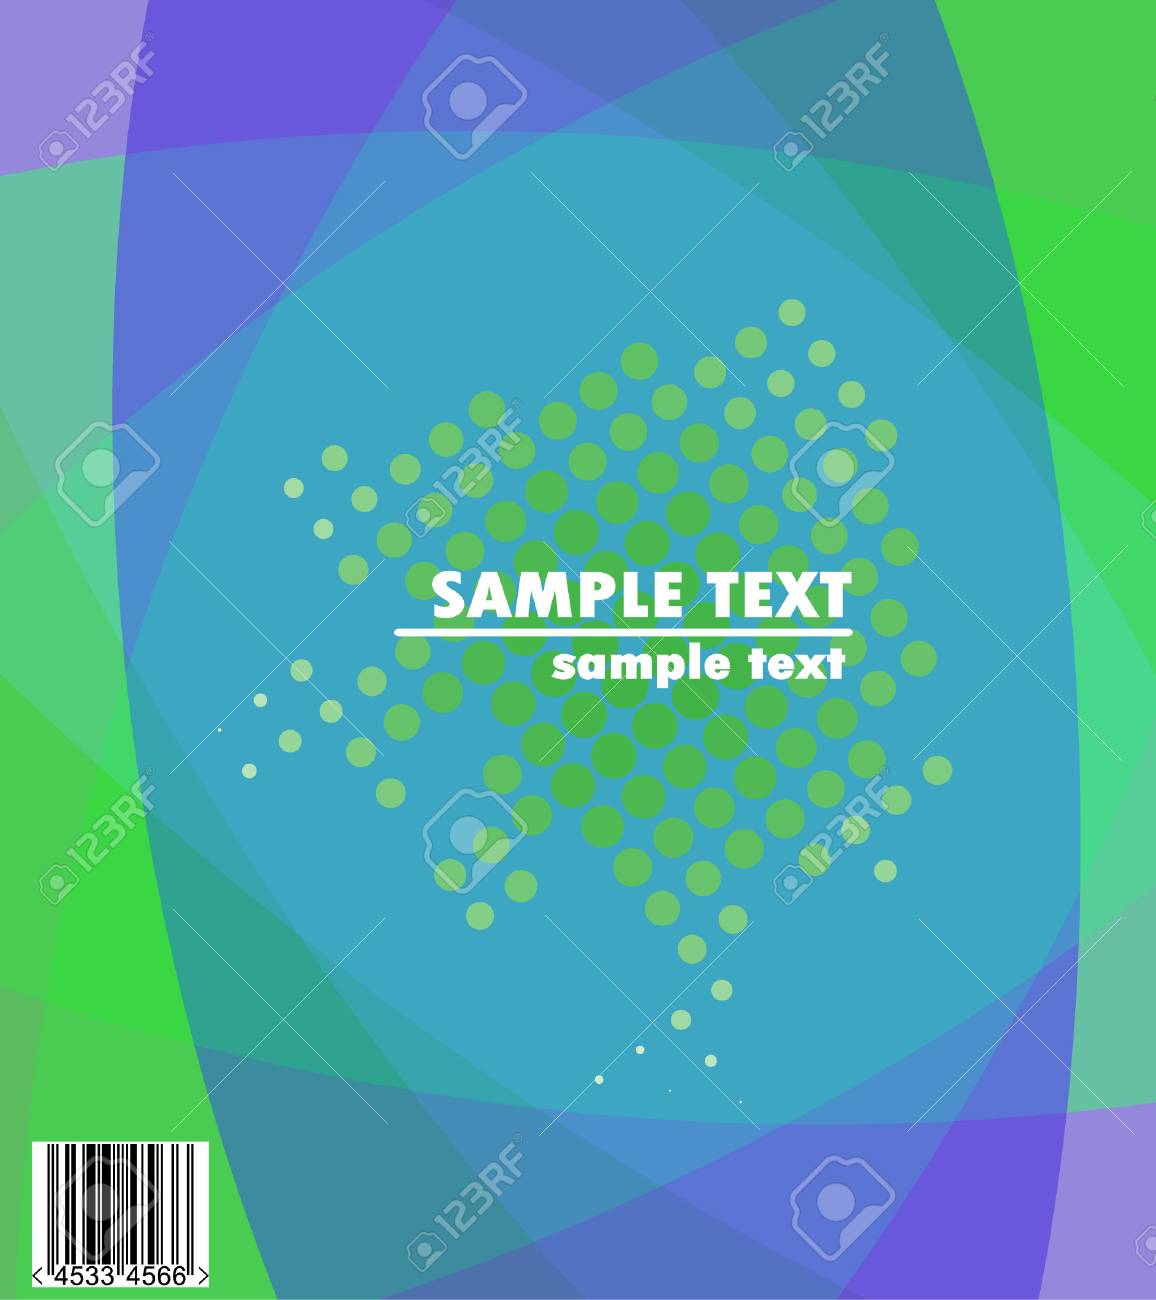 text against abstract background and halftone Stock Vector - 4212607